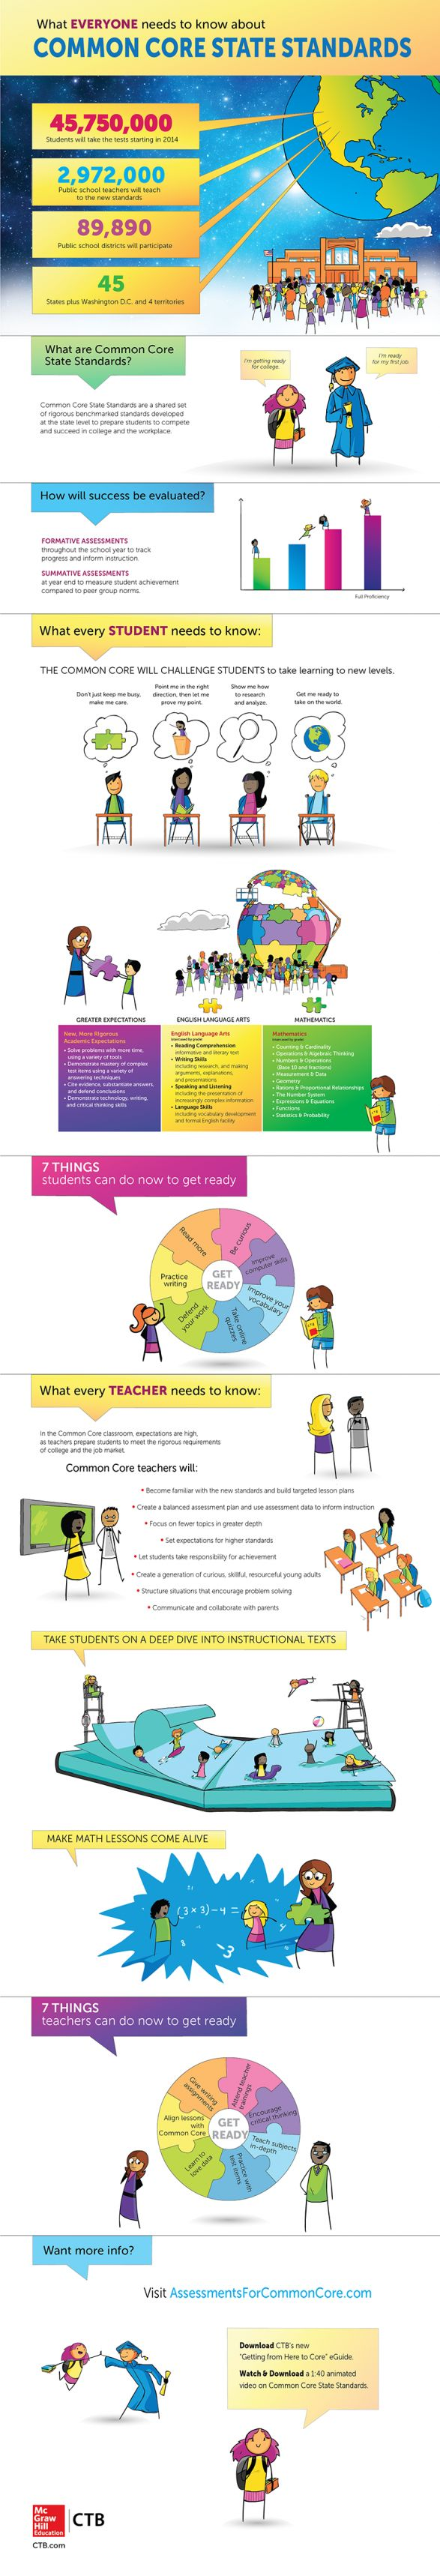 What Everyone Needs to Know About the Common Core State Standards